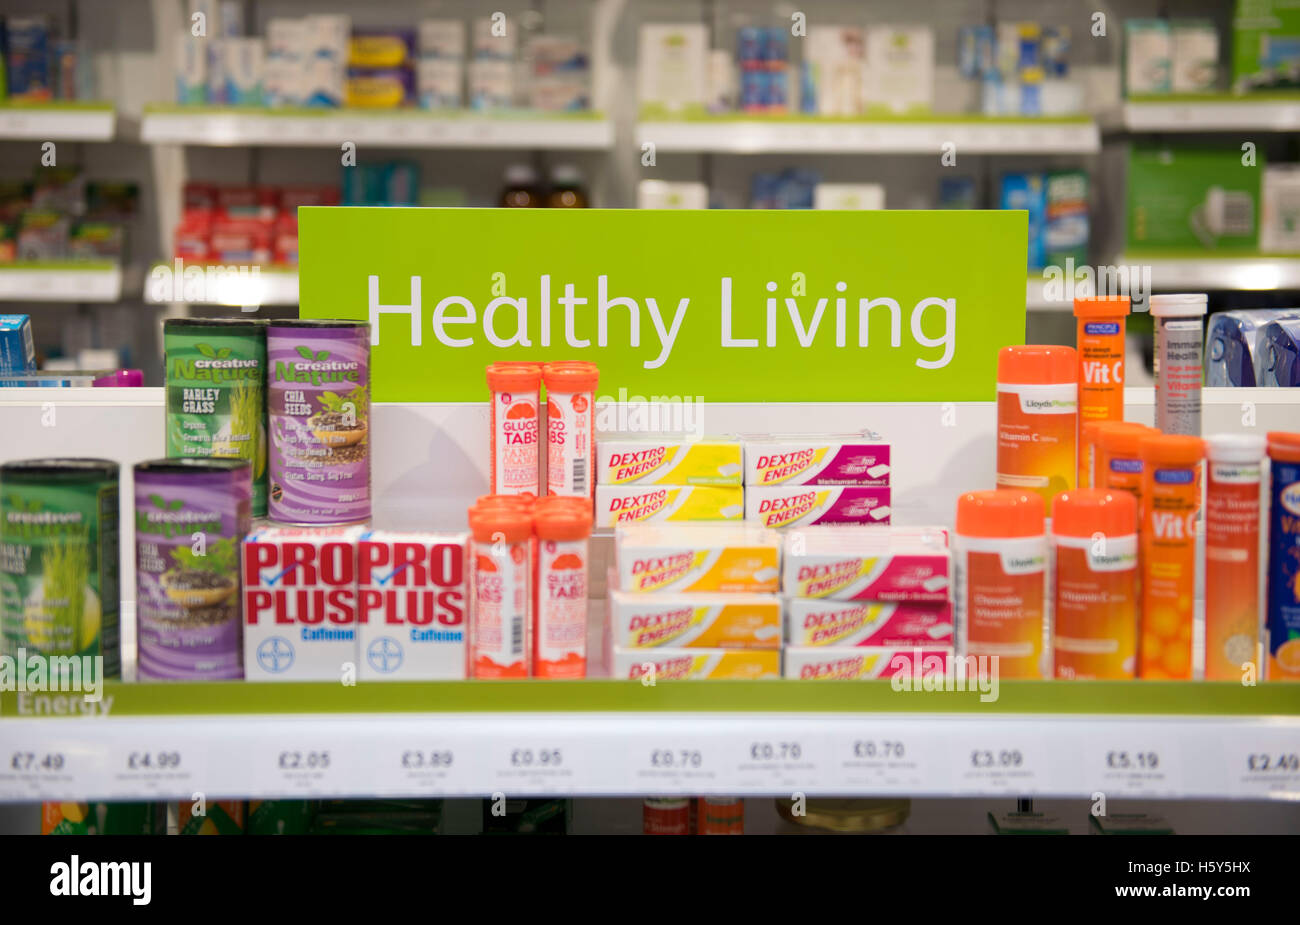 Healthy living cod liver fish oil on display sale on a shelf in a pharmacist store. - Stock Image